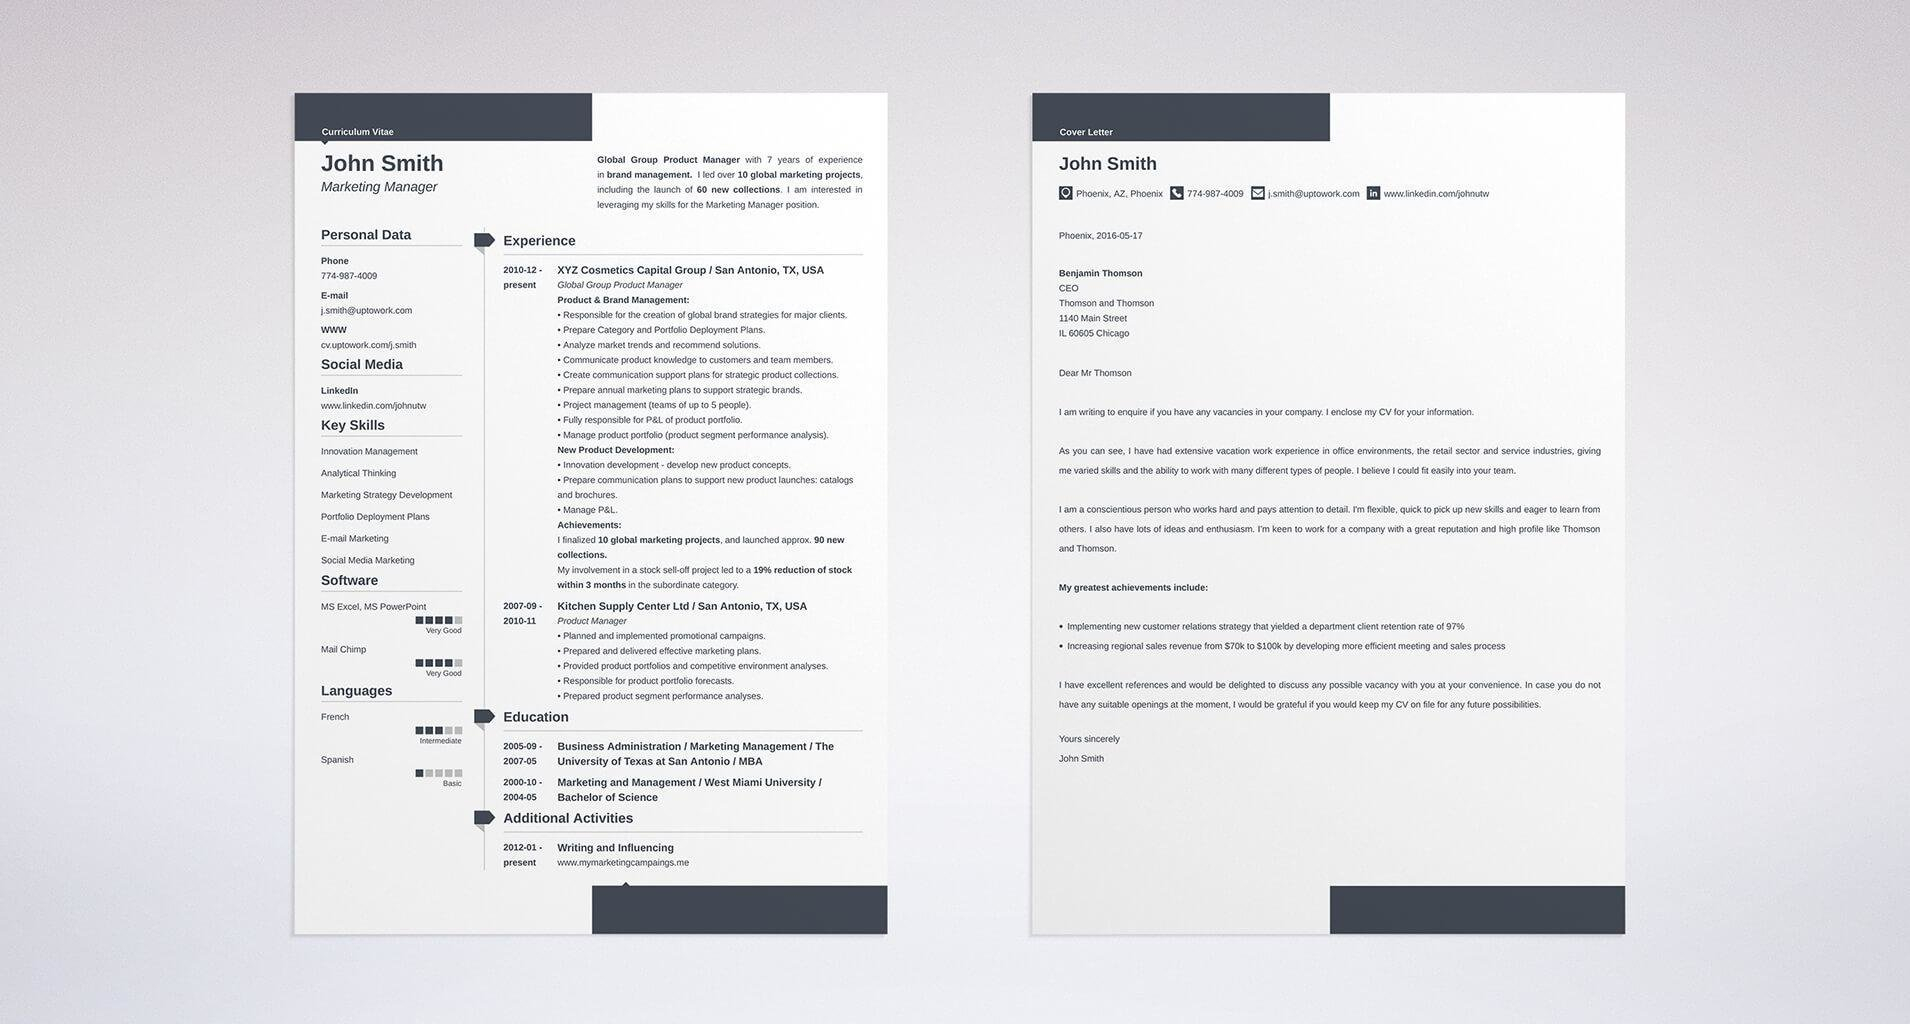 Shoe Store Manager Resume - Entry Level Resume Sample and Plete Guide [ 20 Examples]